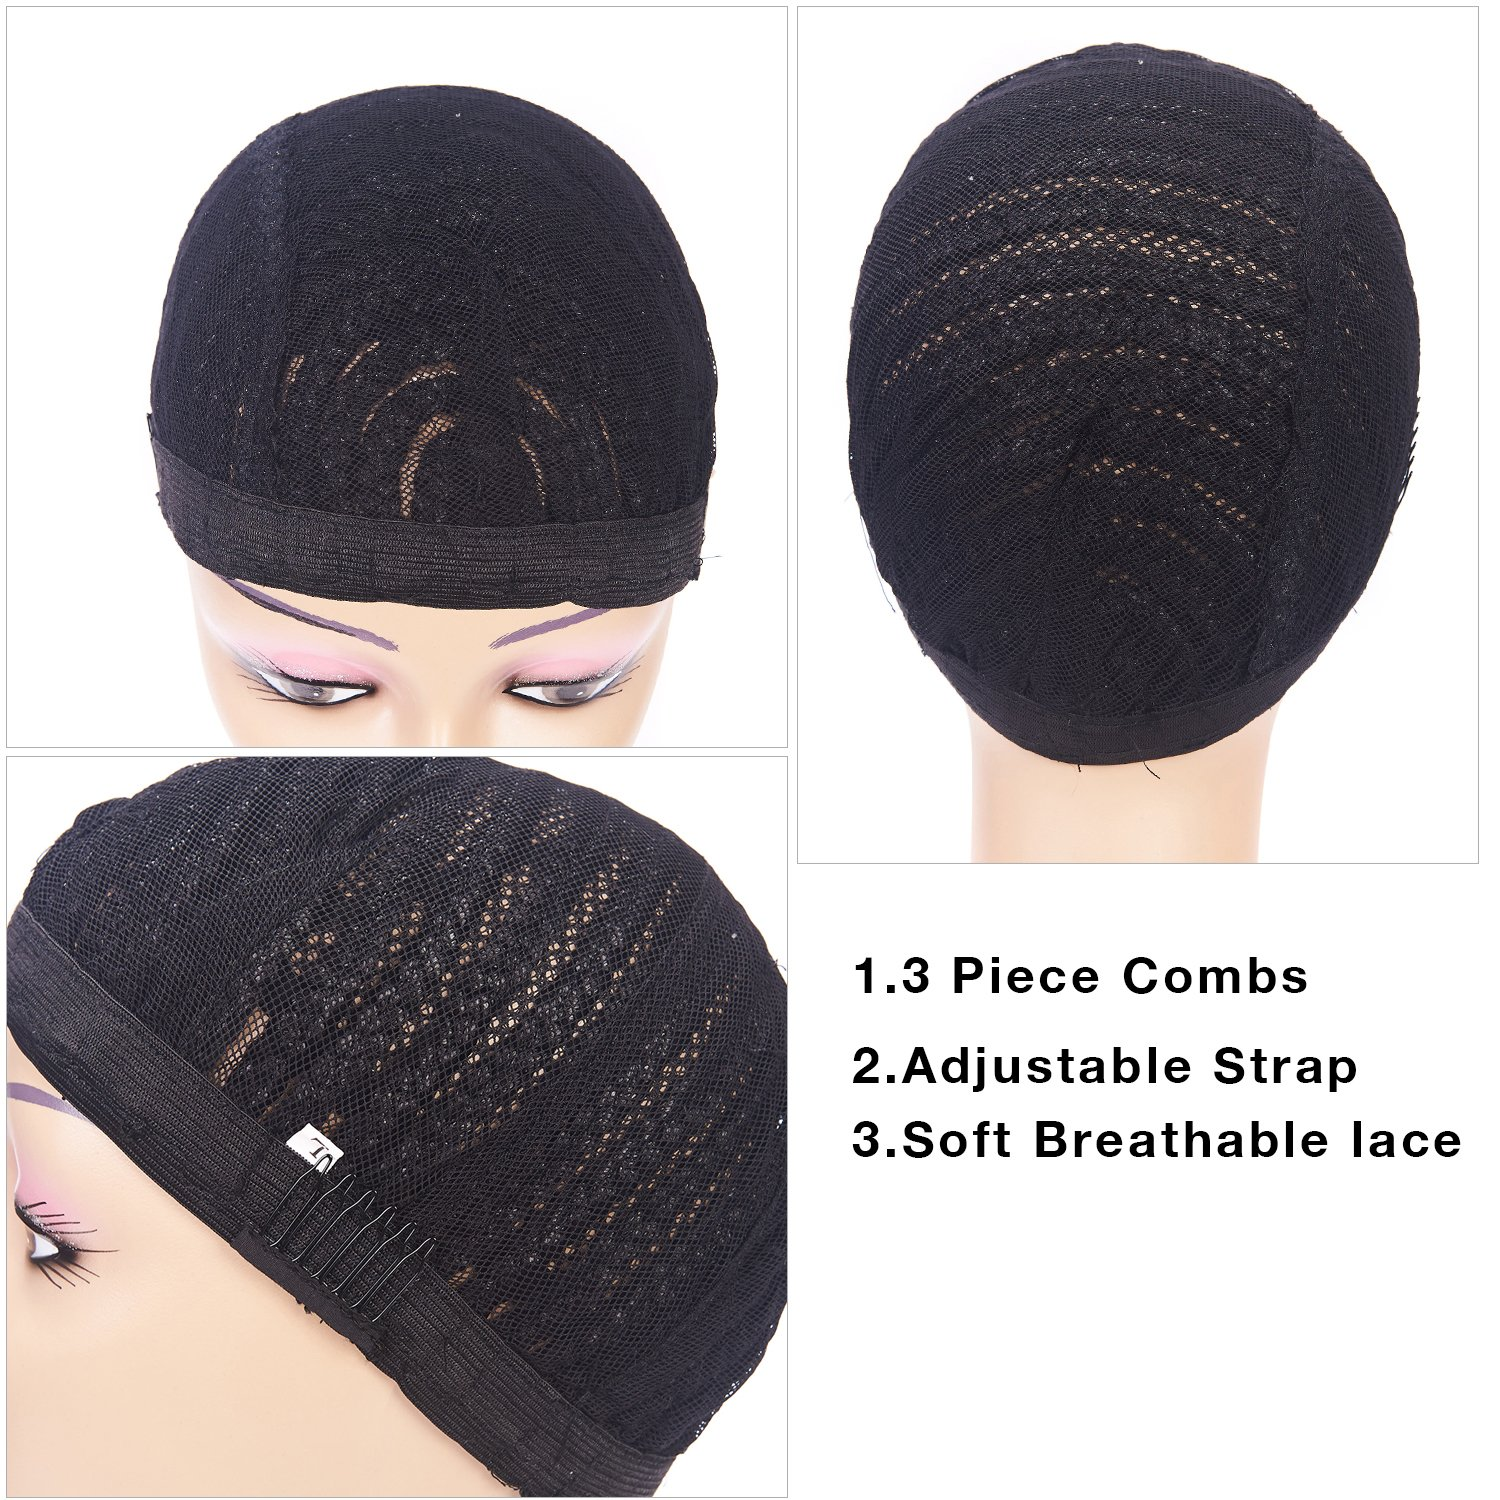 Clip in Braided Wig Caps Crochet Cornrow Cap For Easier Sew In Cap for Making Wigs Adjustable Crochet Wig Cap with 1 Free Hook Needle (L) by XFX Hair (Image #5)